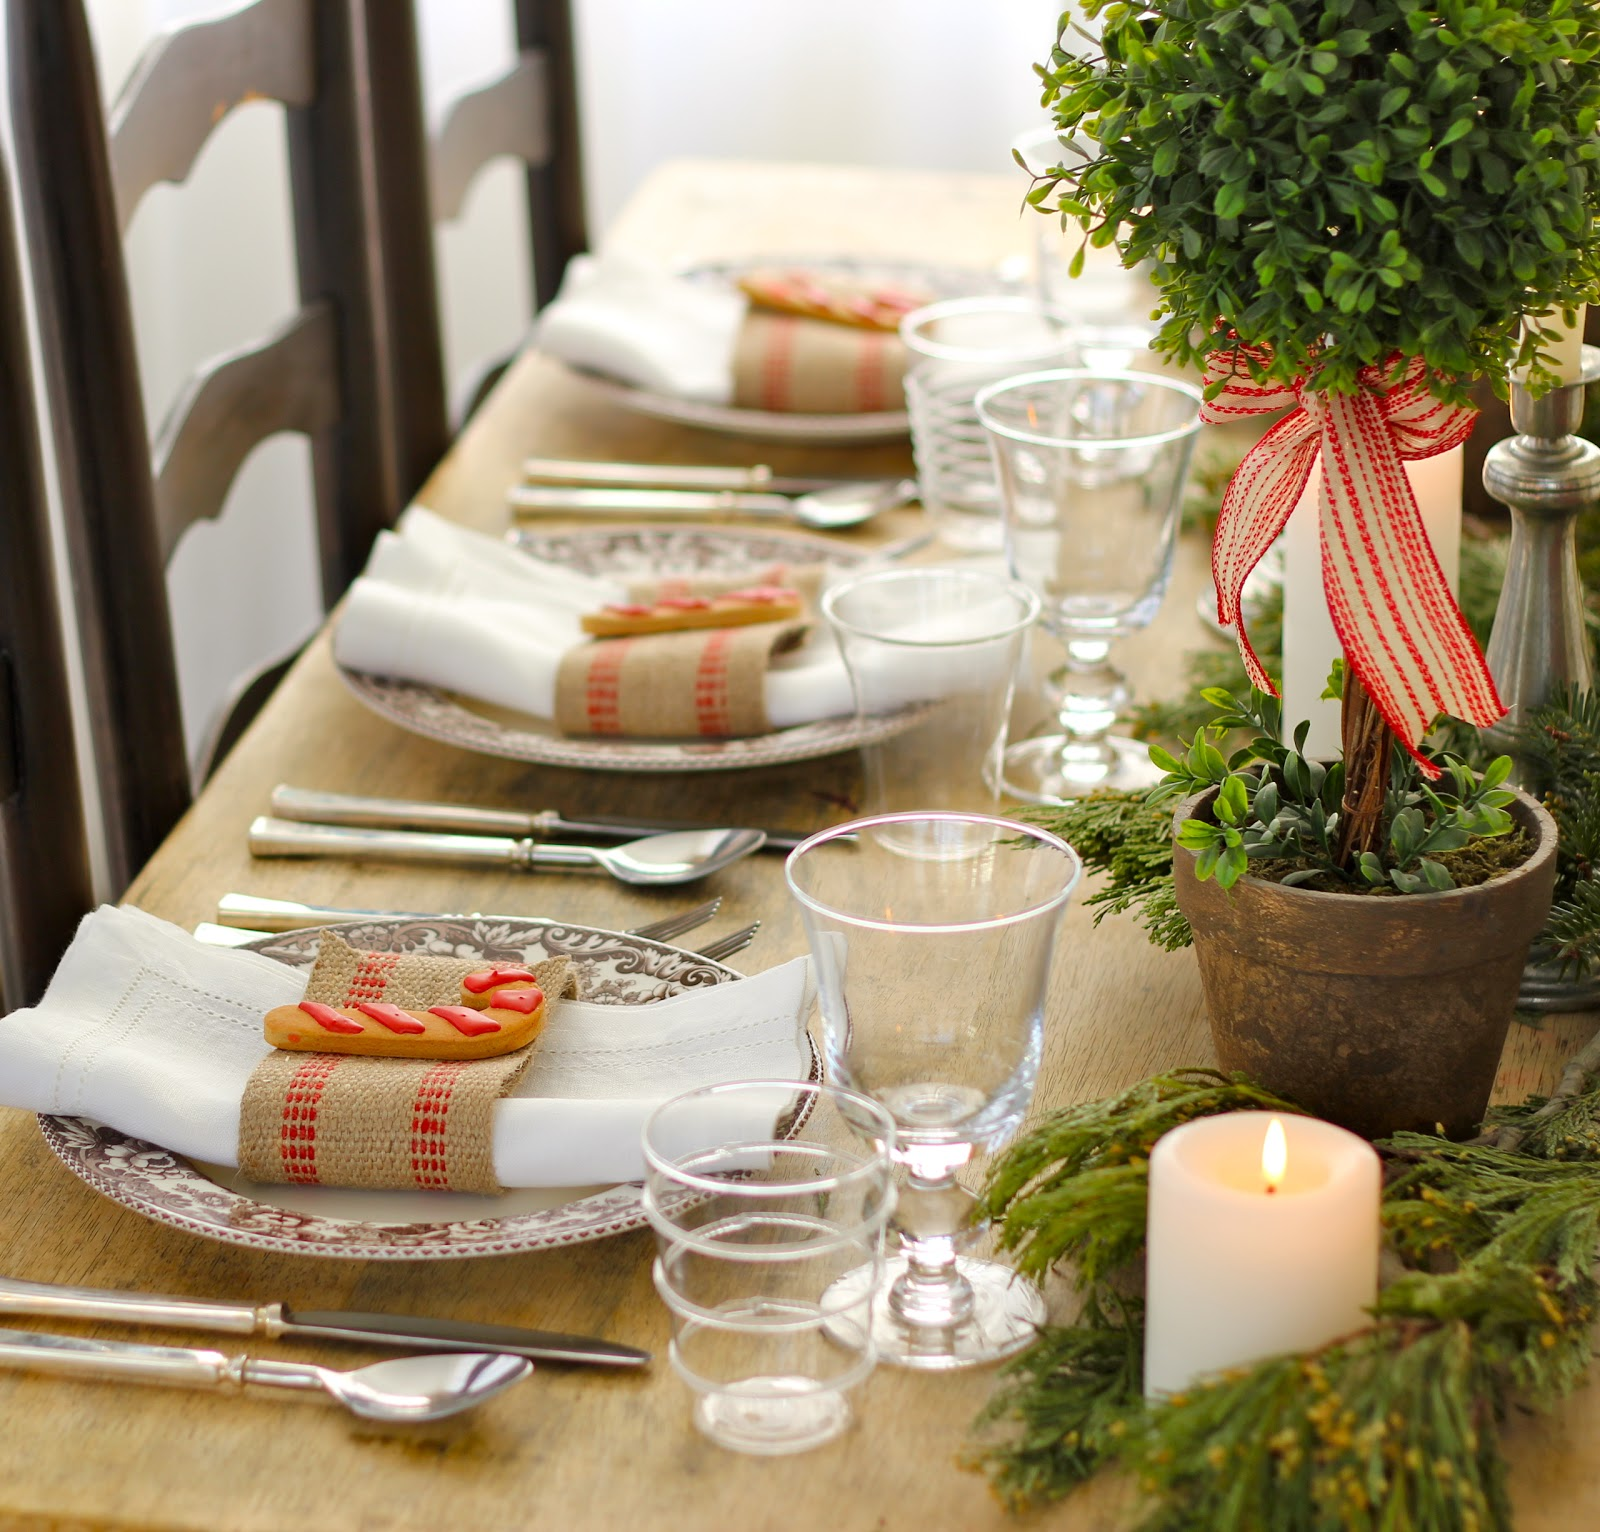 Holiday Table Setting | Centerpiece Ideas for Christmas Table